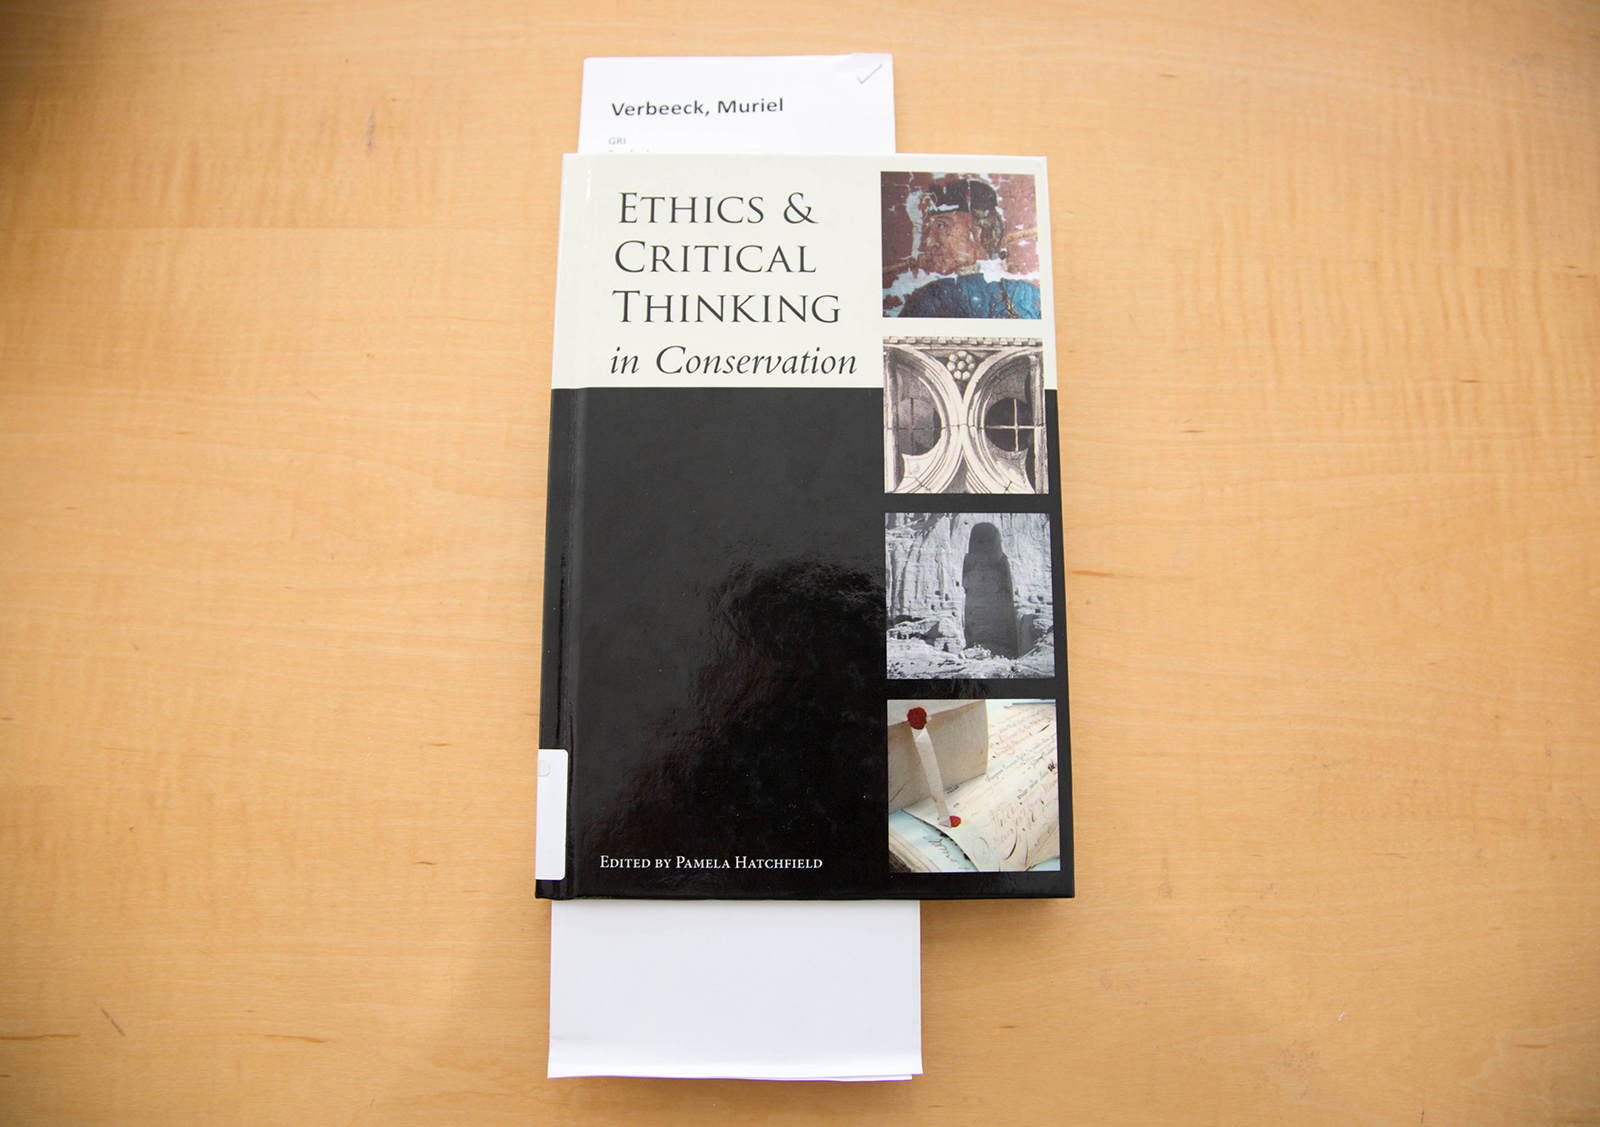 A photo of a book titled: Ethics and Critical Thinking in Conservation.